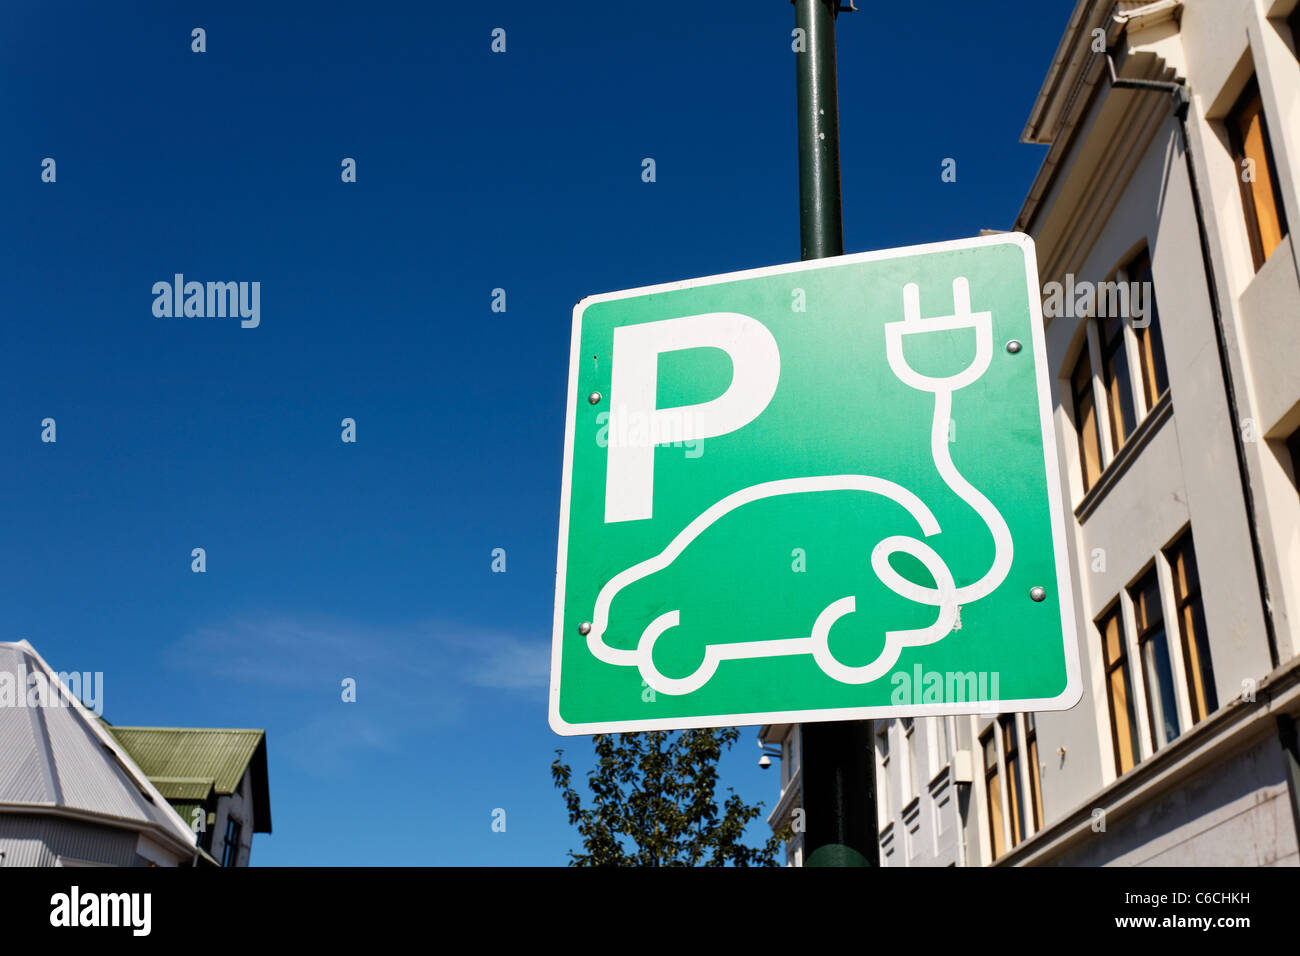 Sign for a charging point for an electric vehicle, Rejkjavik, Iceland Stock Photo